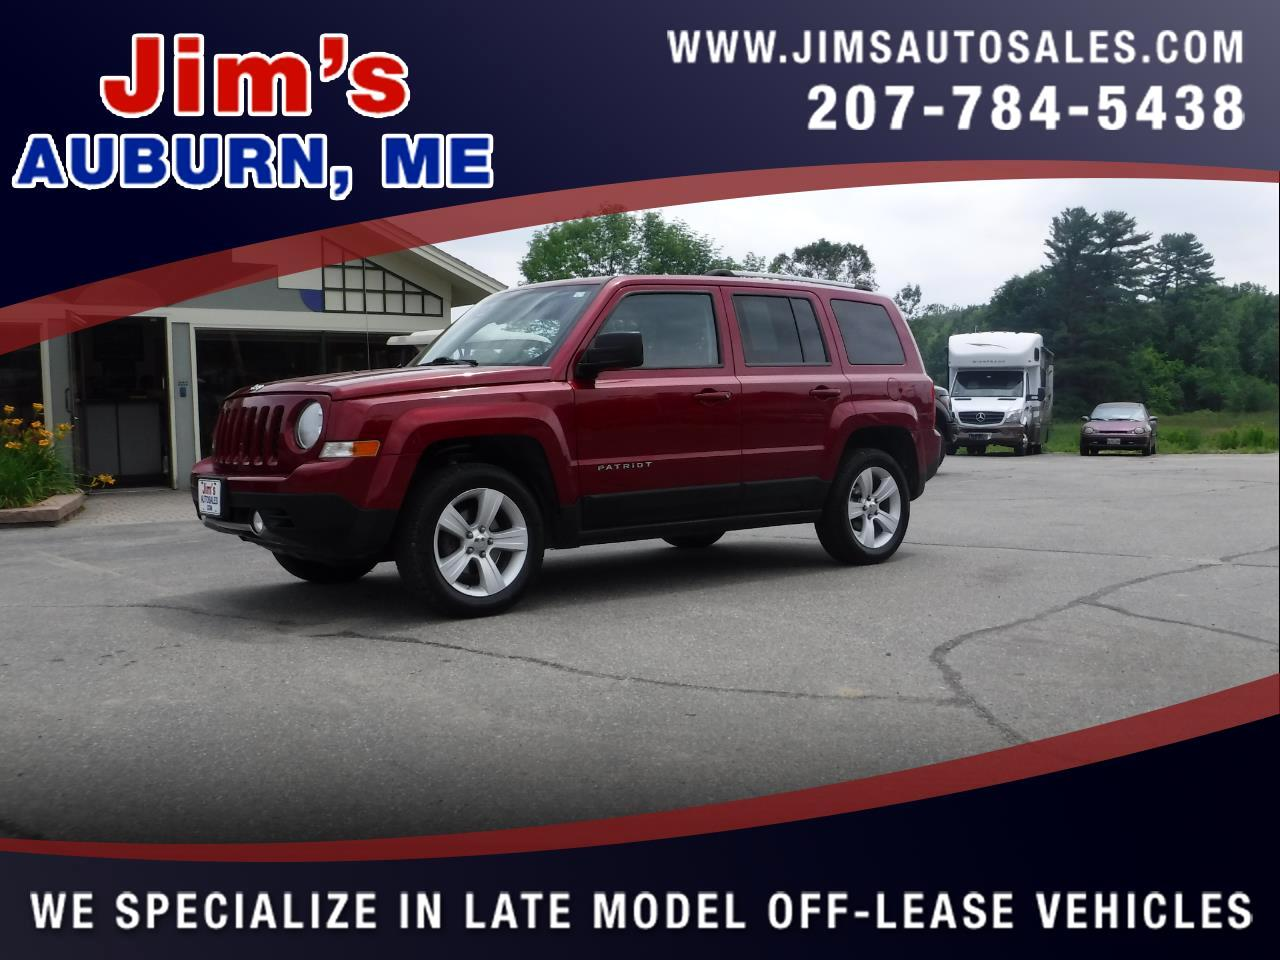 2011 Jeep Patriot 4WD 4dr Latitude X